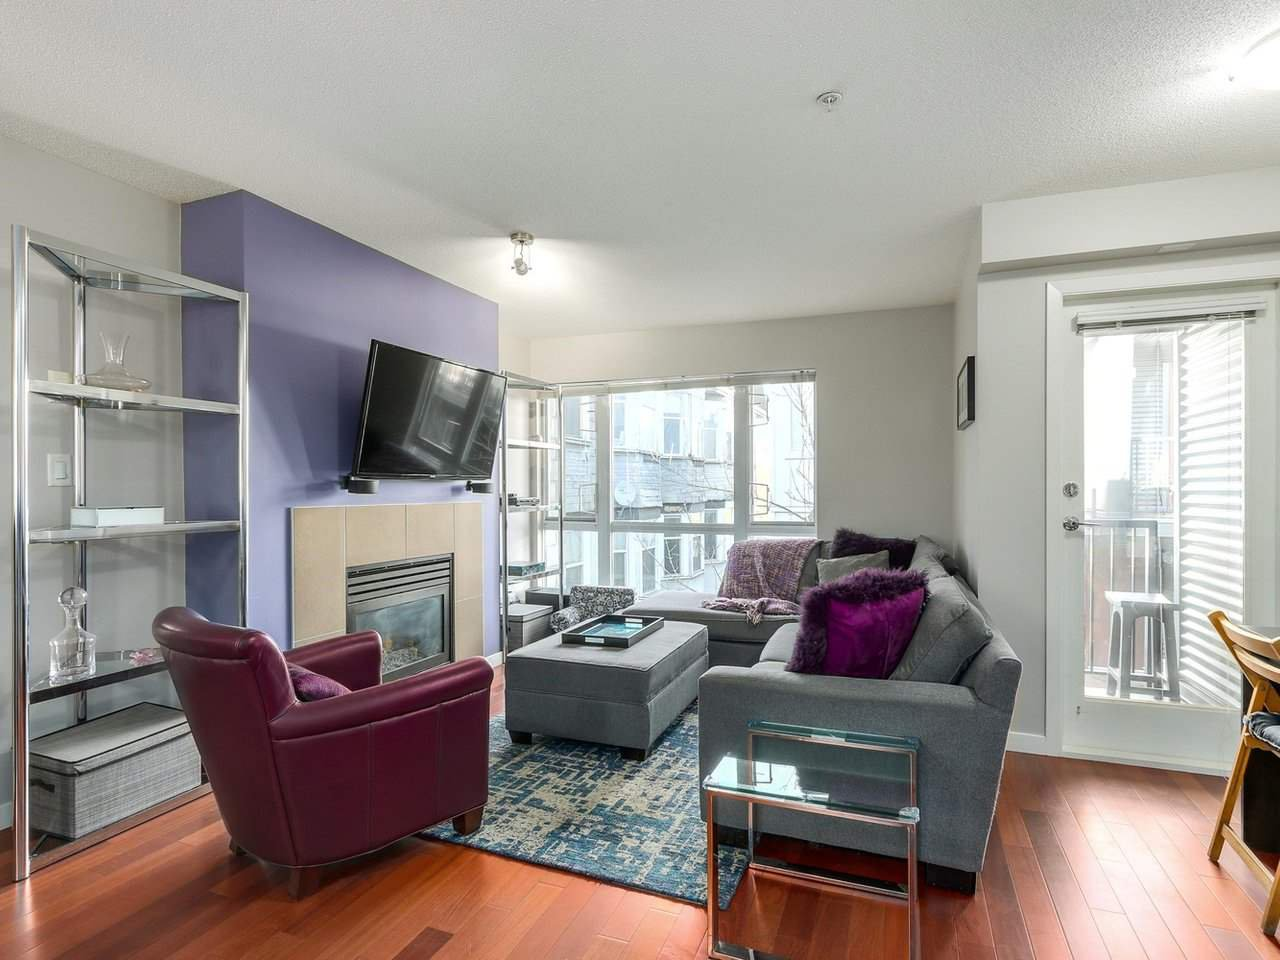 Photo 4: Photos: 119 672 W 6TH AVENUE in Vancouver: Fairview VW Townhouse for sale (Vancouver West)  : MLS®# R2401186